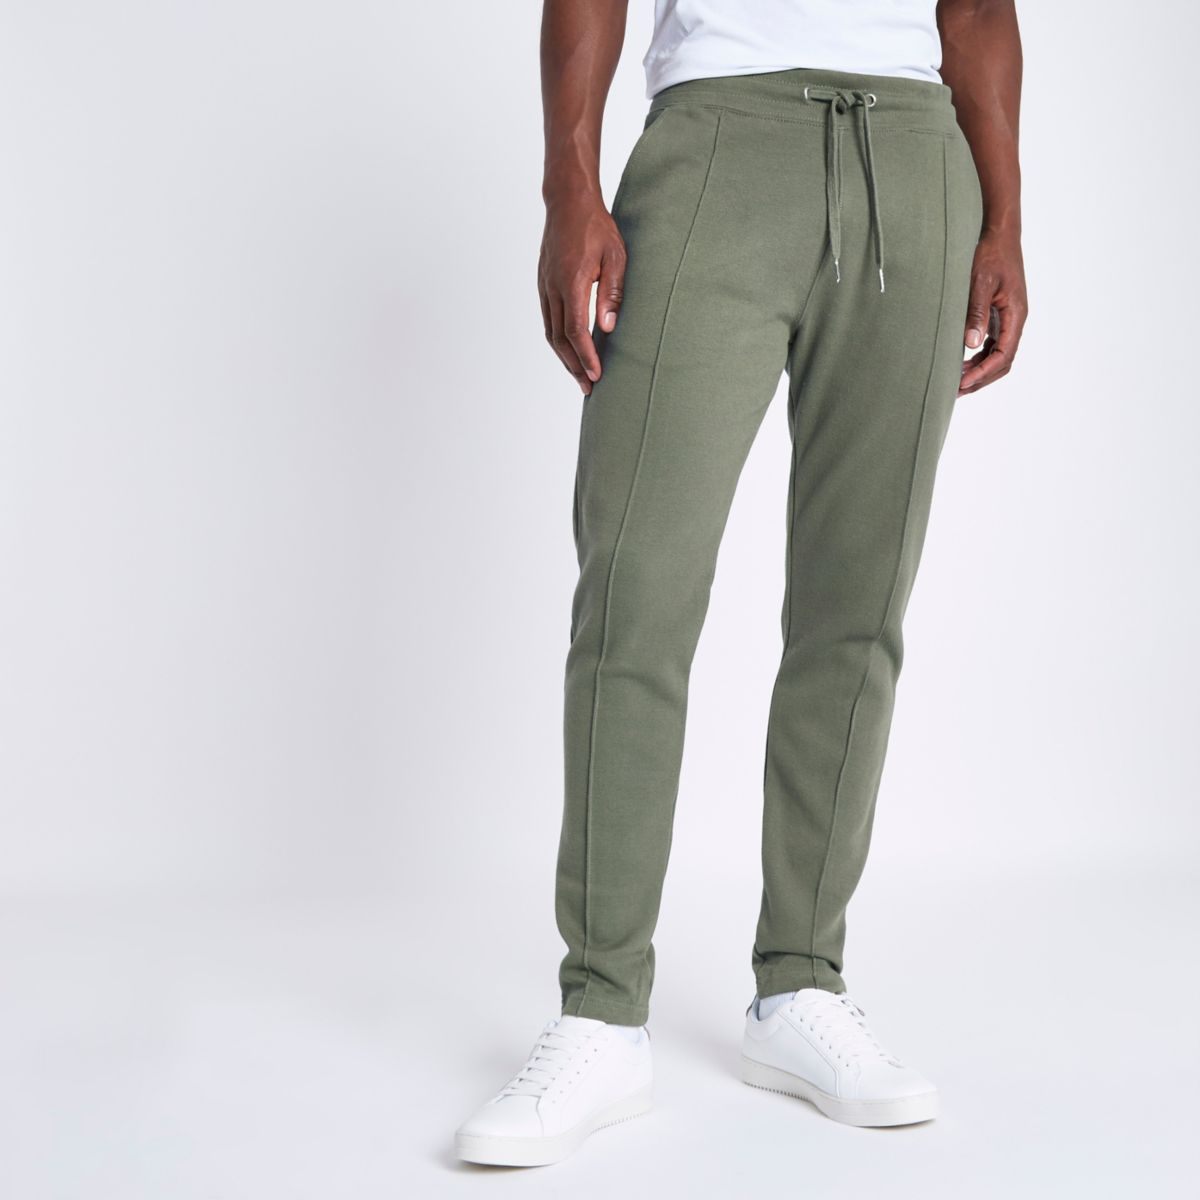 Green Muscle Fit Pique Joggers by River Island